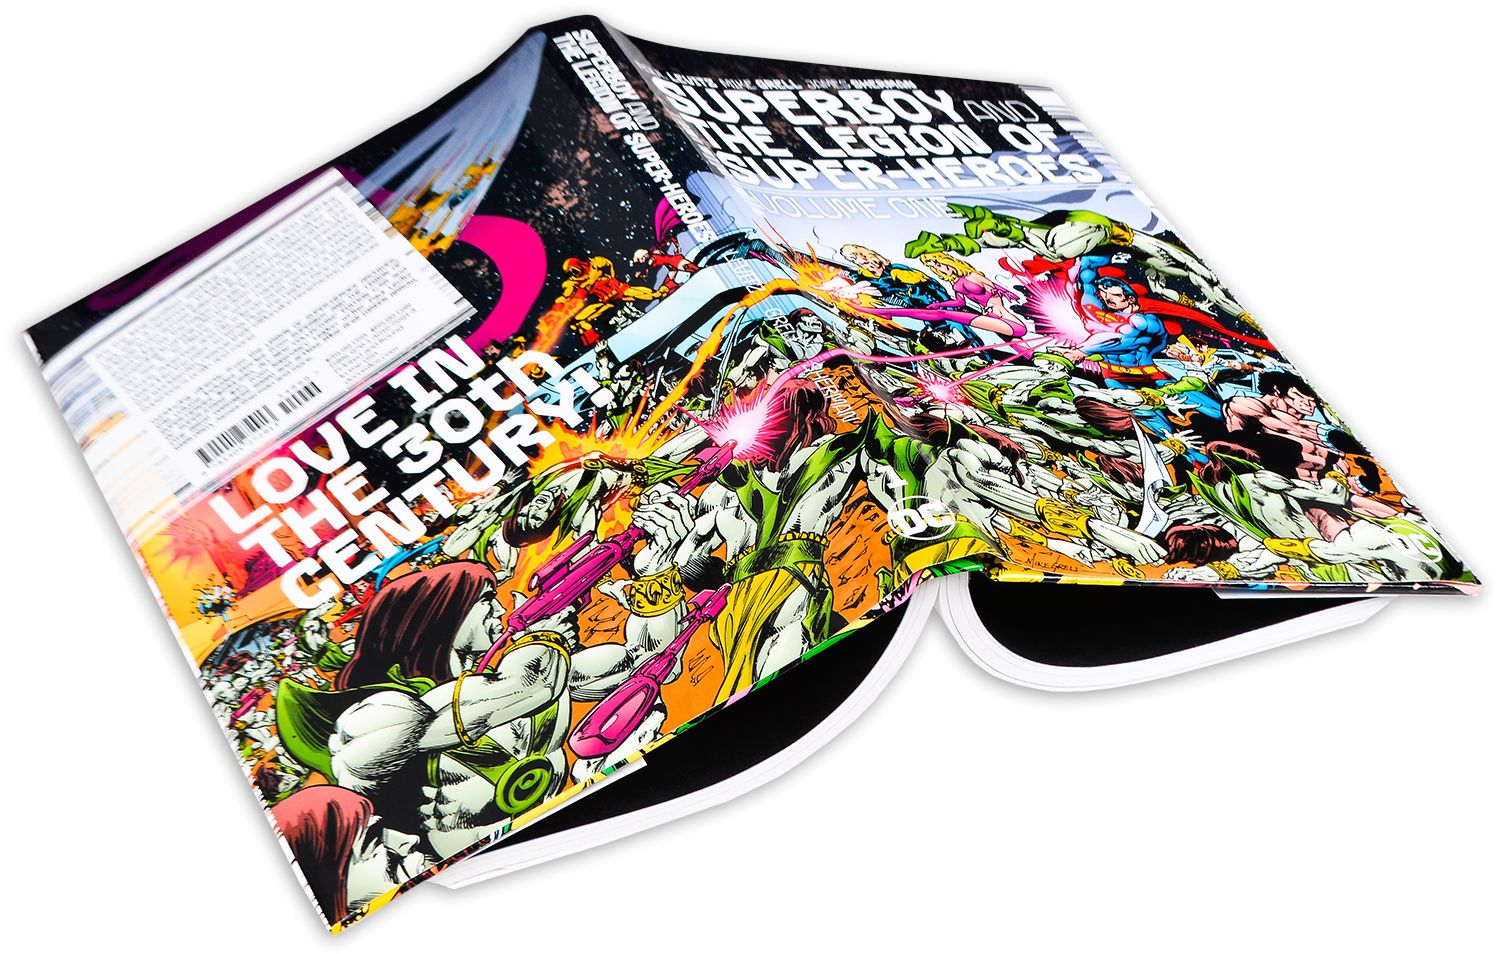 Superboy and the Legion of Super-Heroes Vol. 1-1 - 2